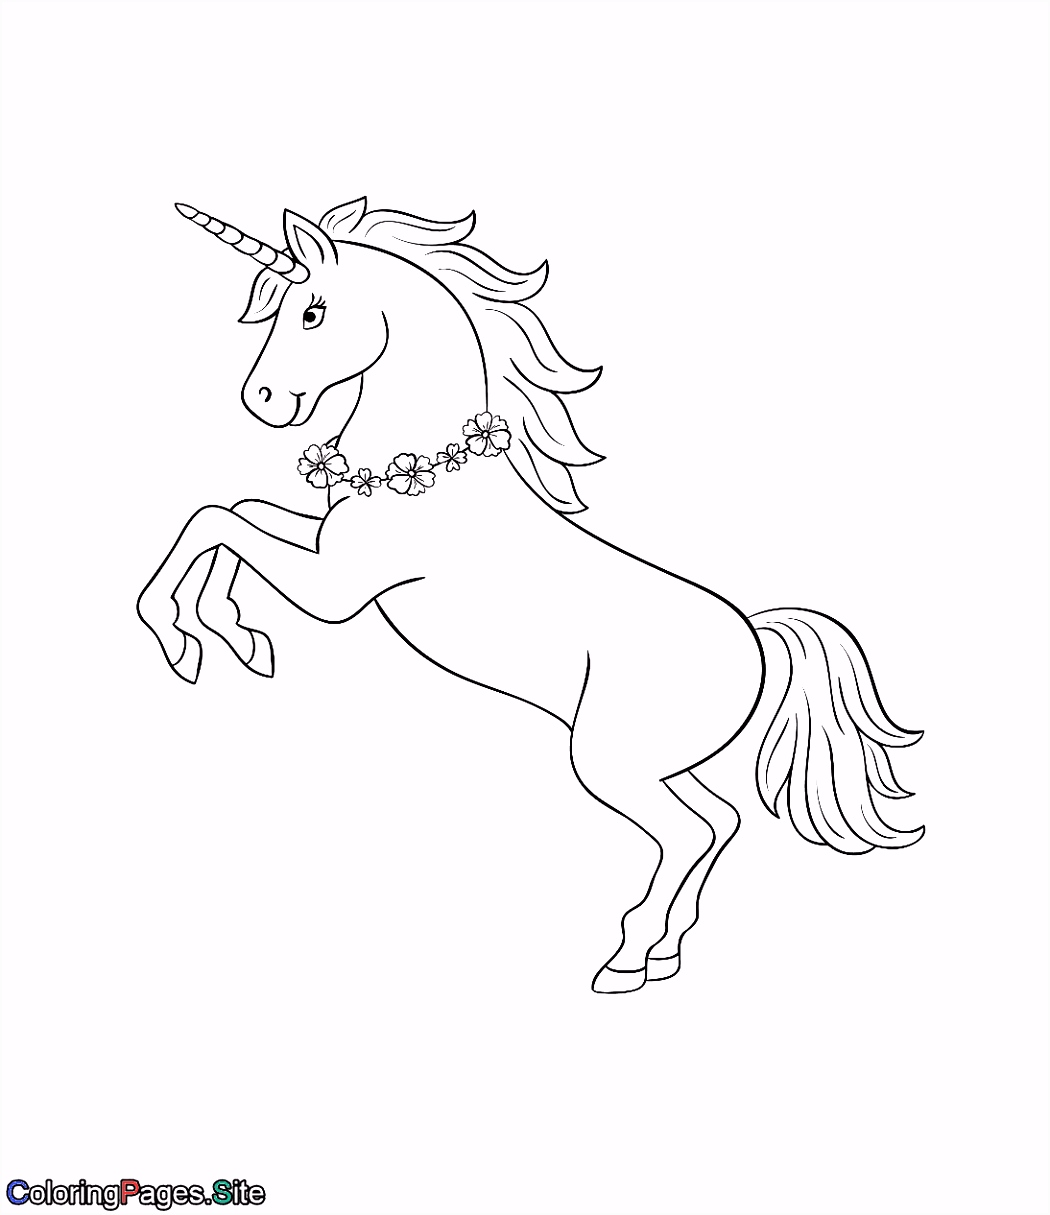 Unicorn with a flowers necklace coloring page